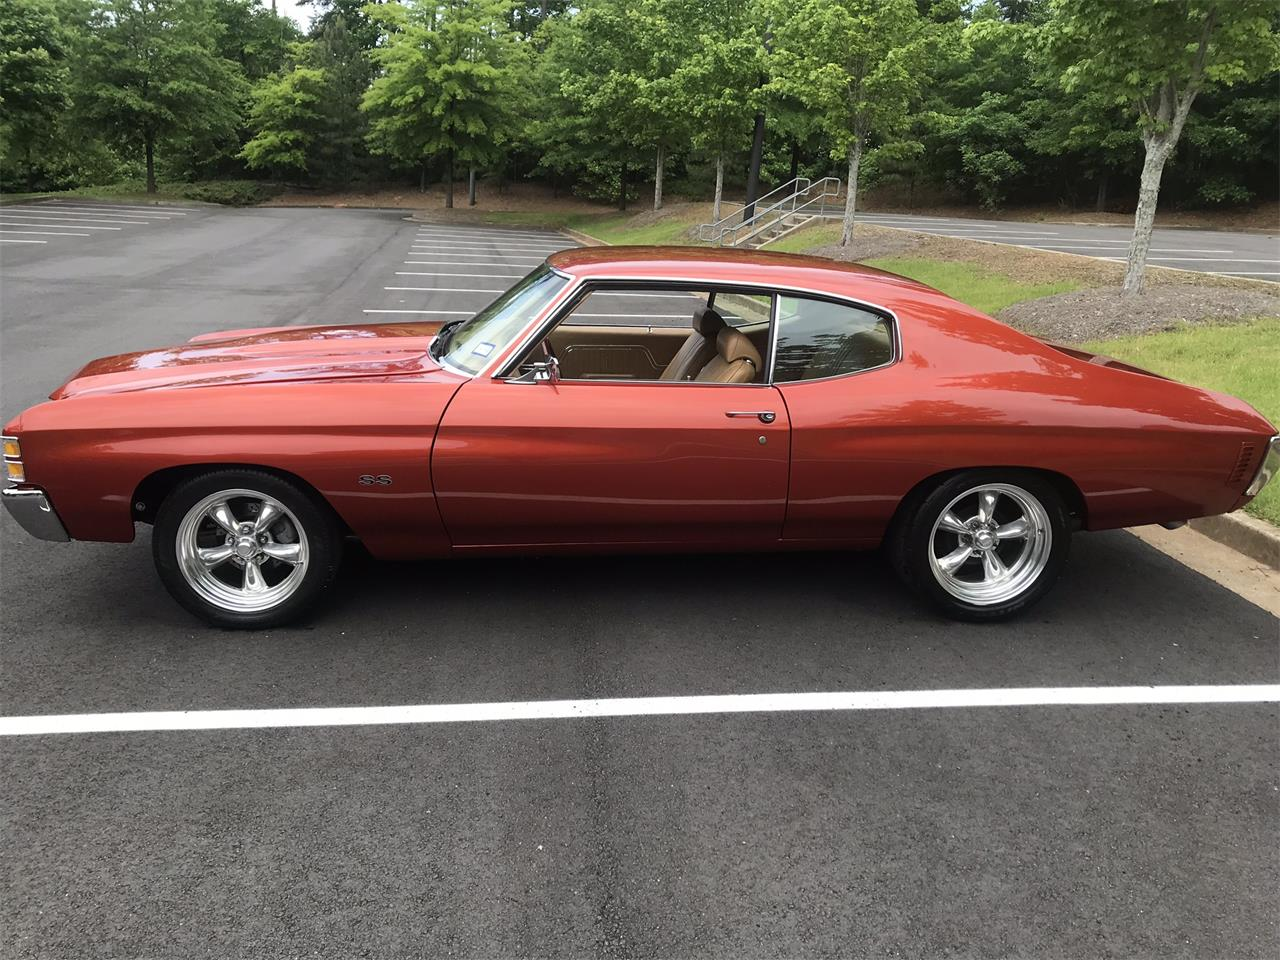 Large Picture of '71 Chevrolet Chevelle SS located in Georgia - $36,000.00 - Q0XV